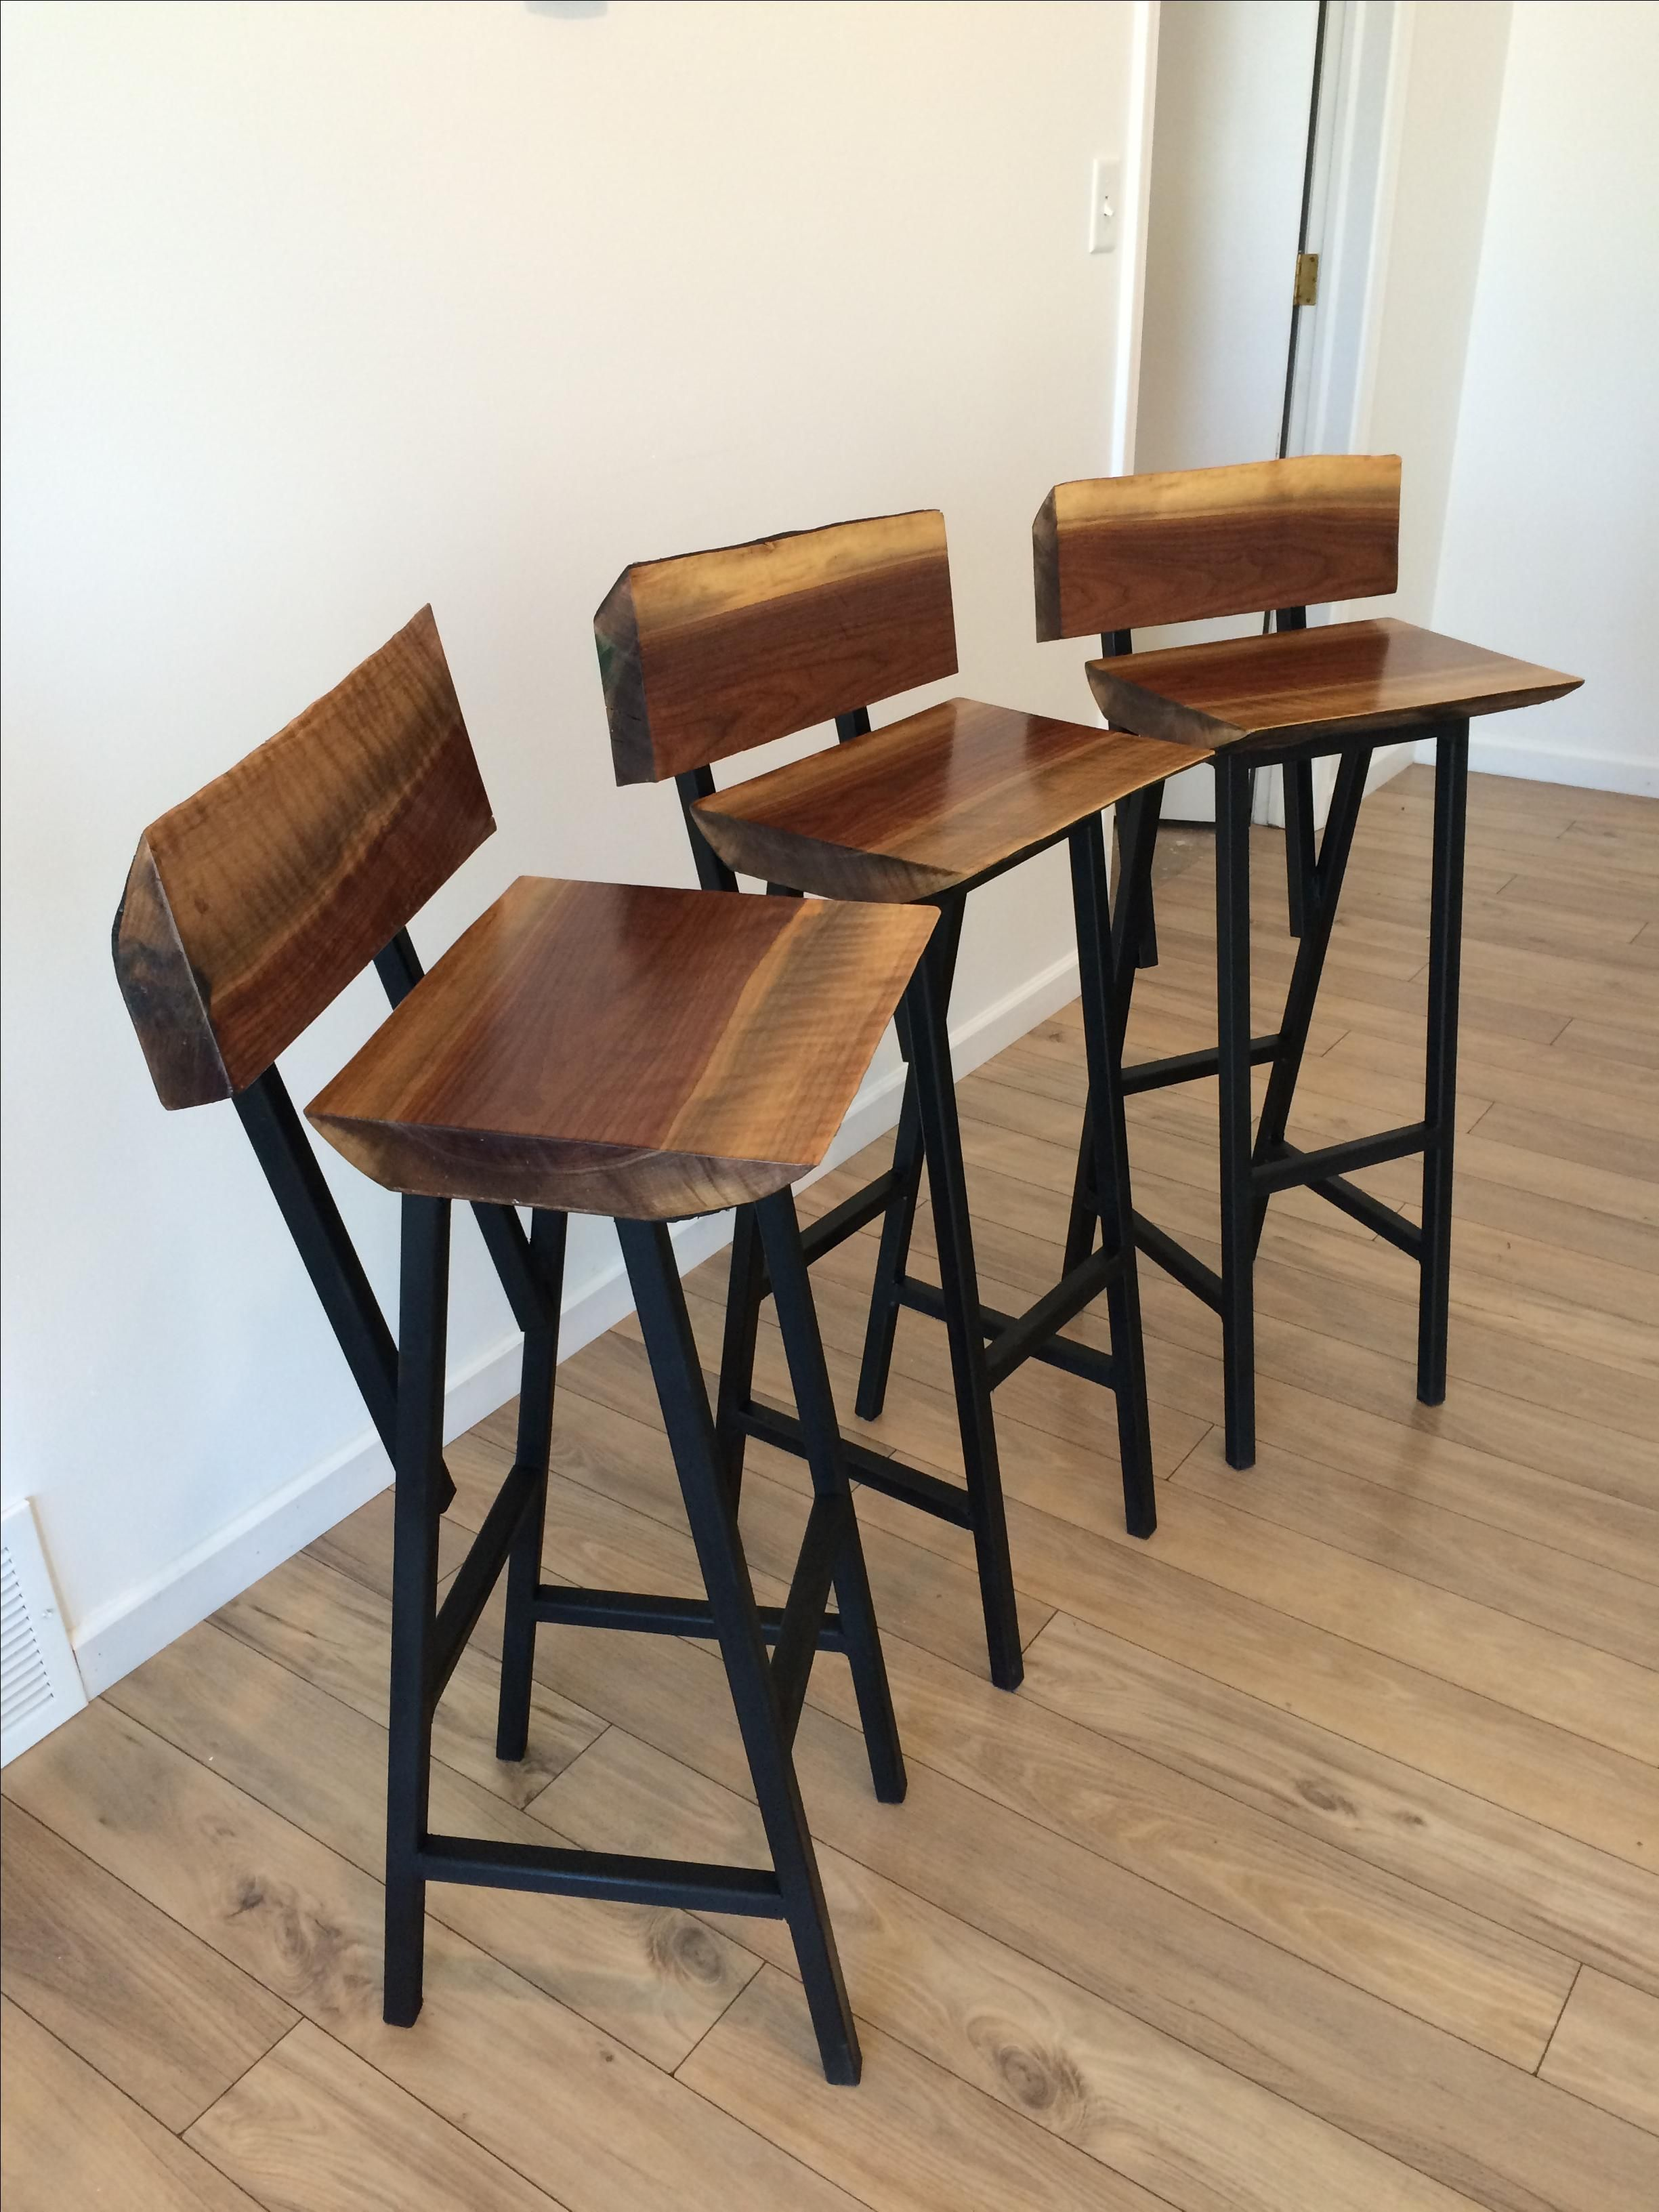 Buy A Custom Made Live Edge Industrial Bar Stool Made To